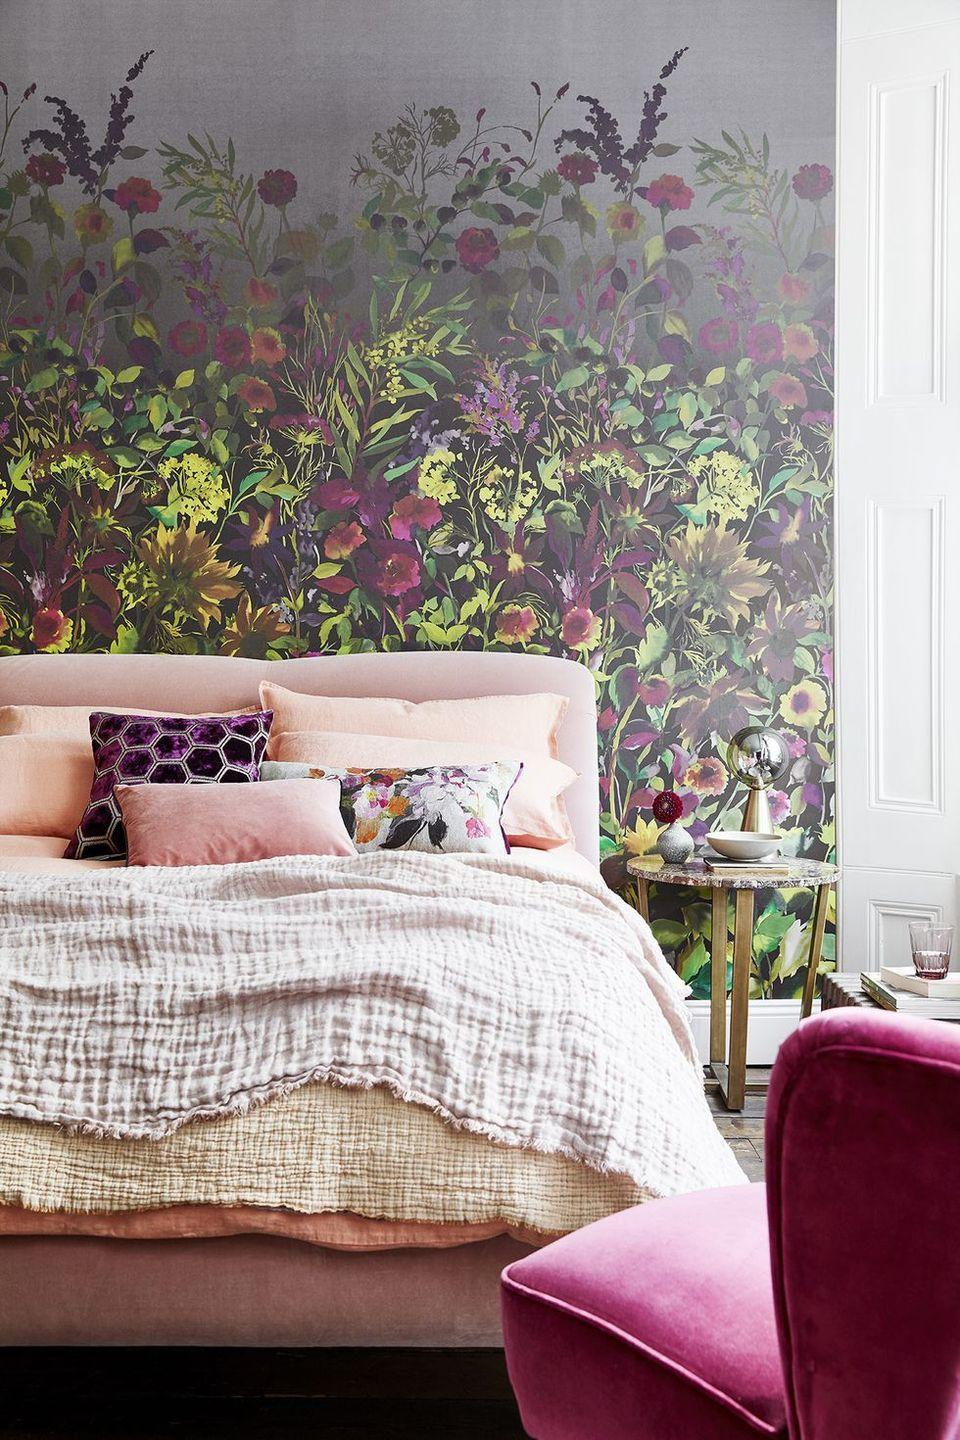 <p>A peel-and-stick wall covering, like this stunning floral design, is all you need to transform your bedroom into an inviting retreat. </p>